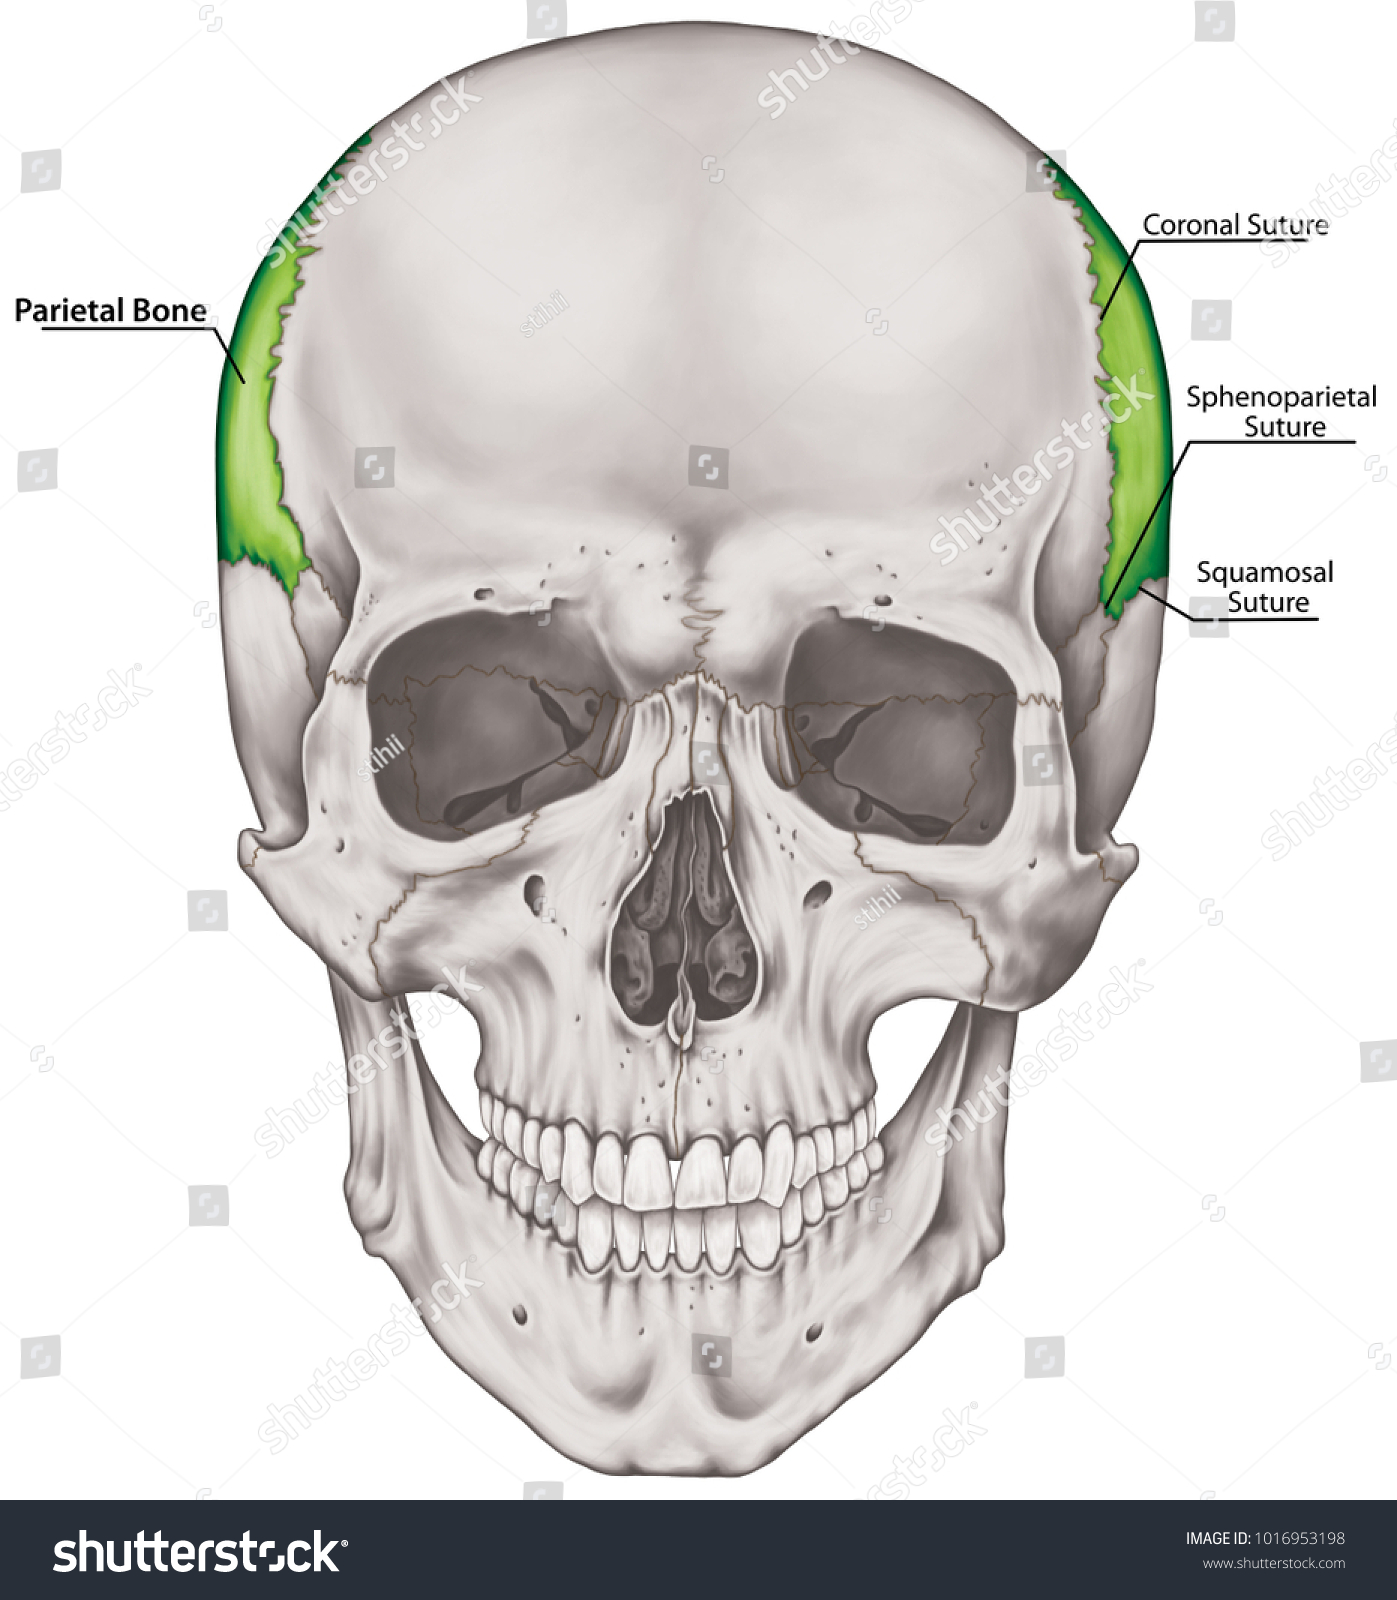 Parietal Bone Cranium Bones Head Skull Stock Illustration 1016953198 ...